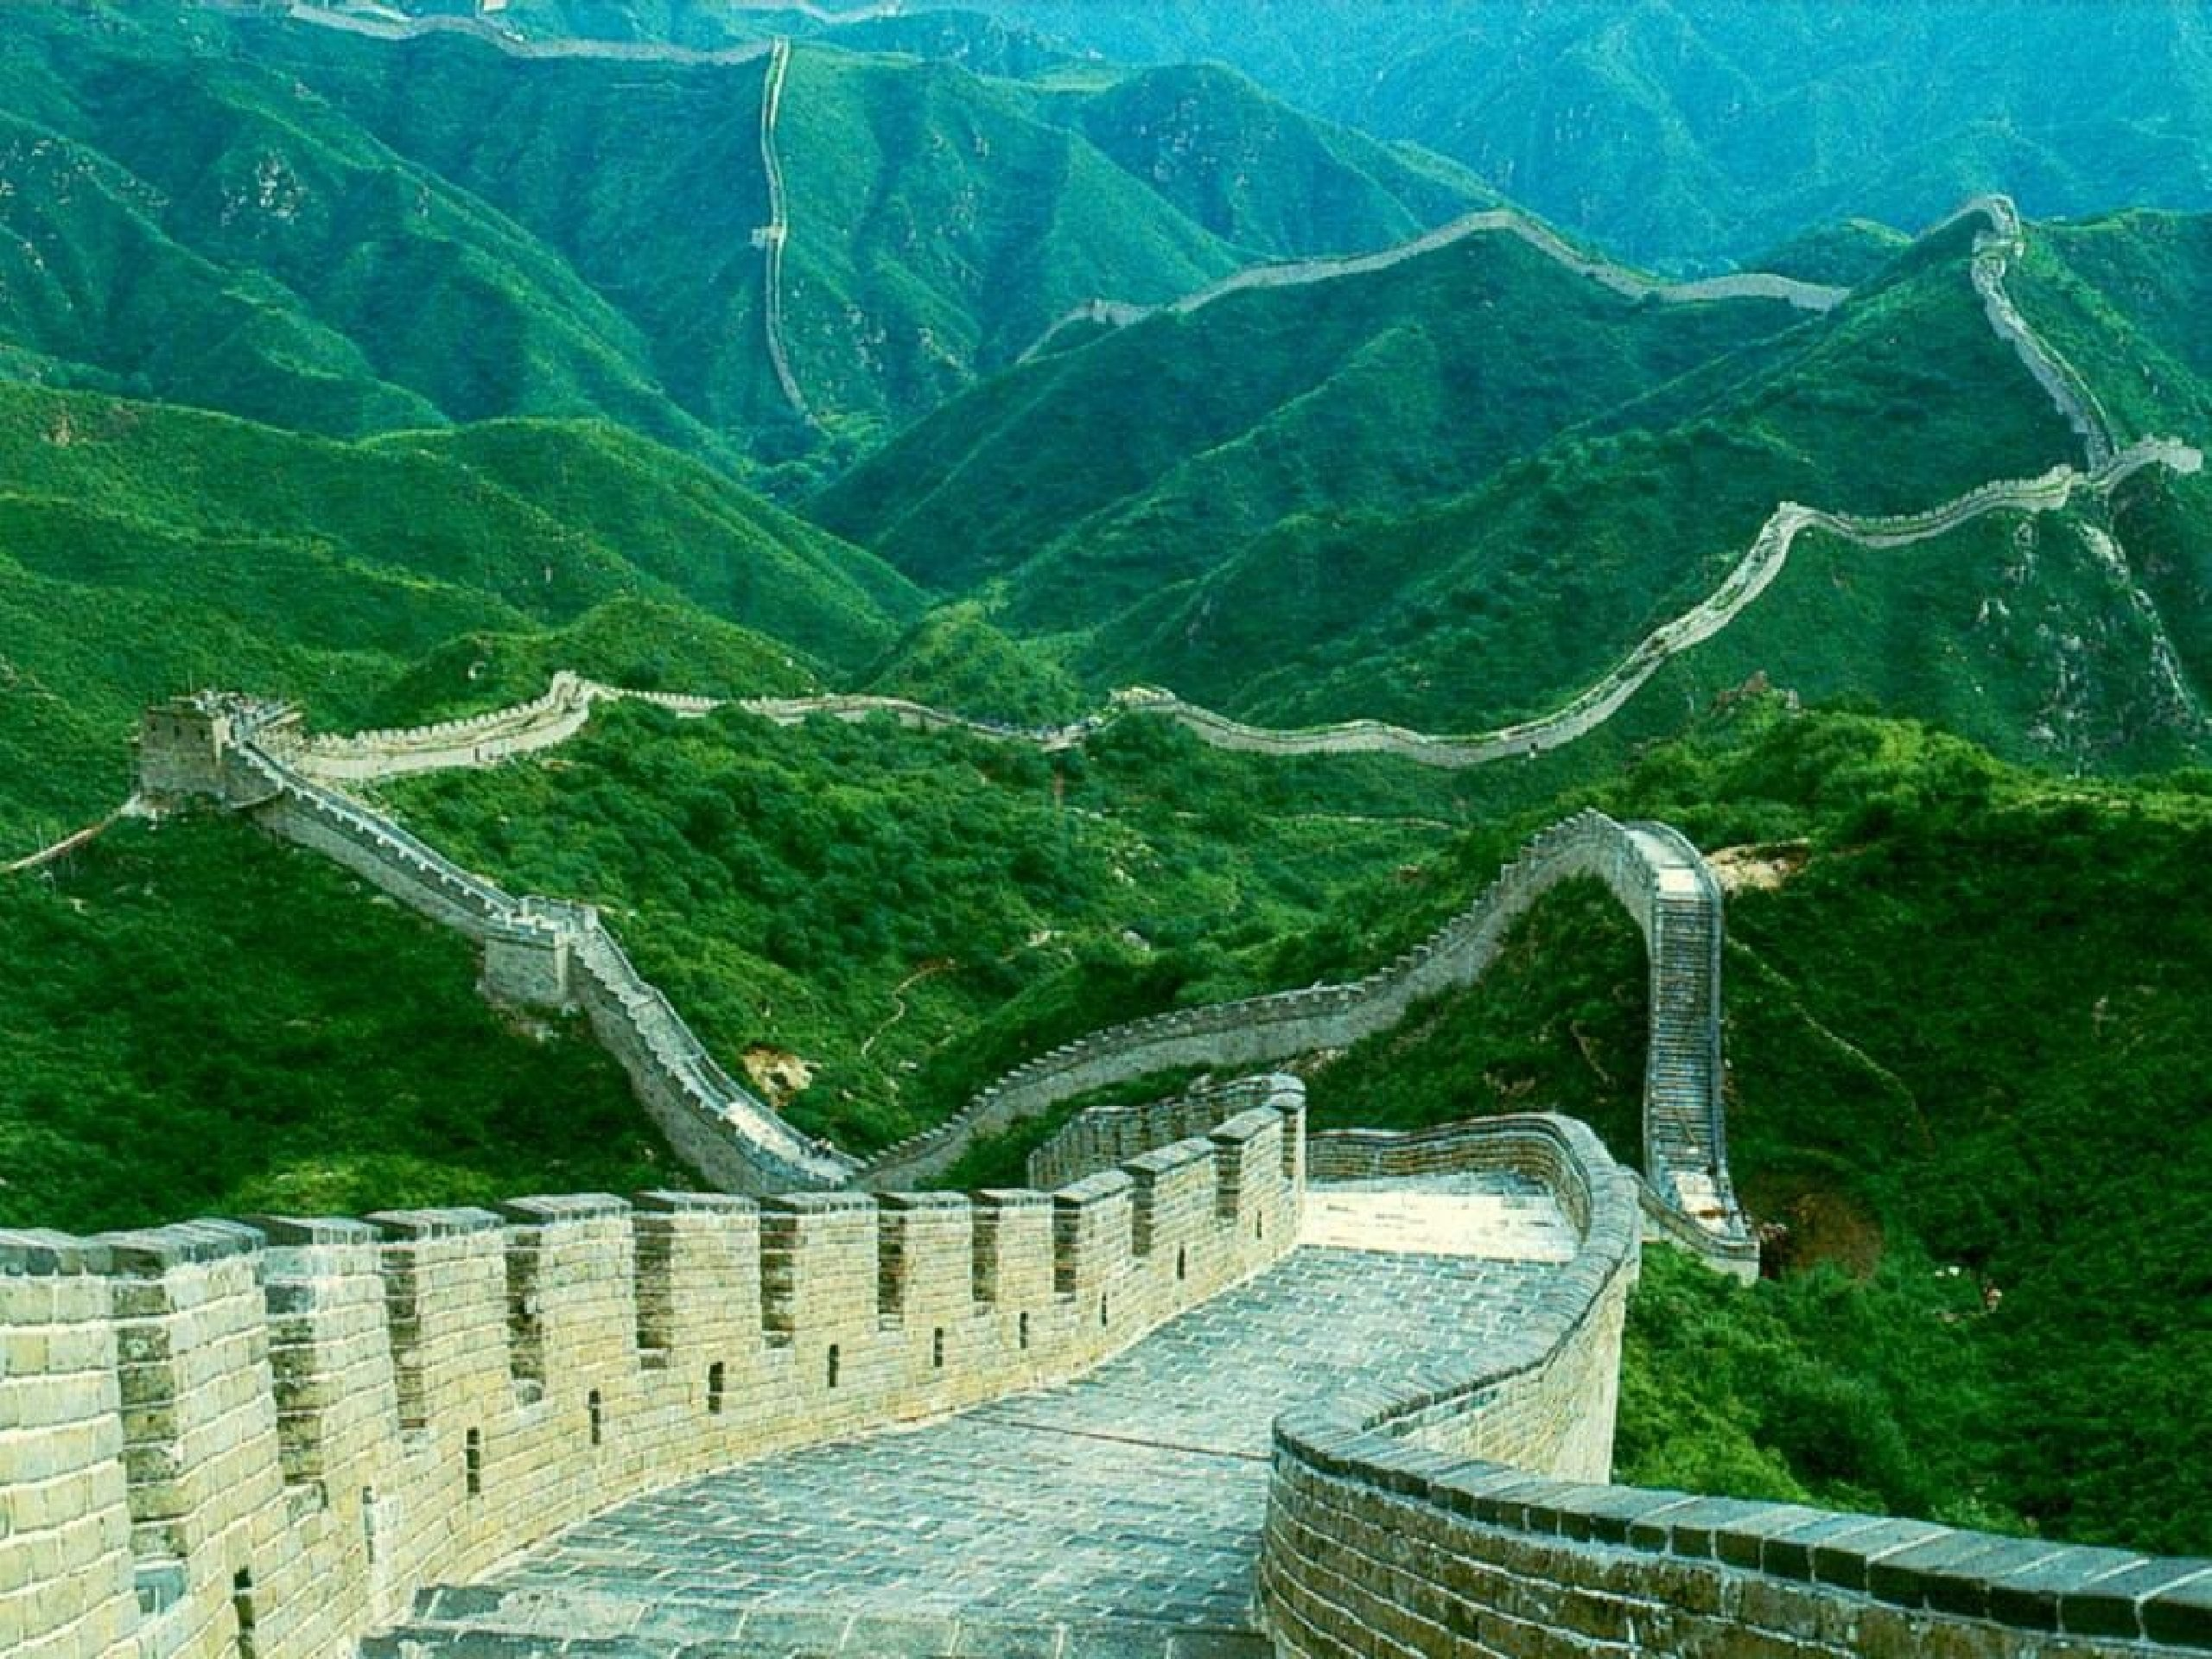 The Great Wall of China Wallpaper 51 images 2560x1920